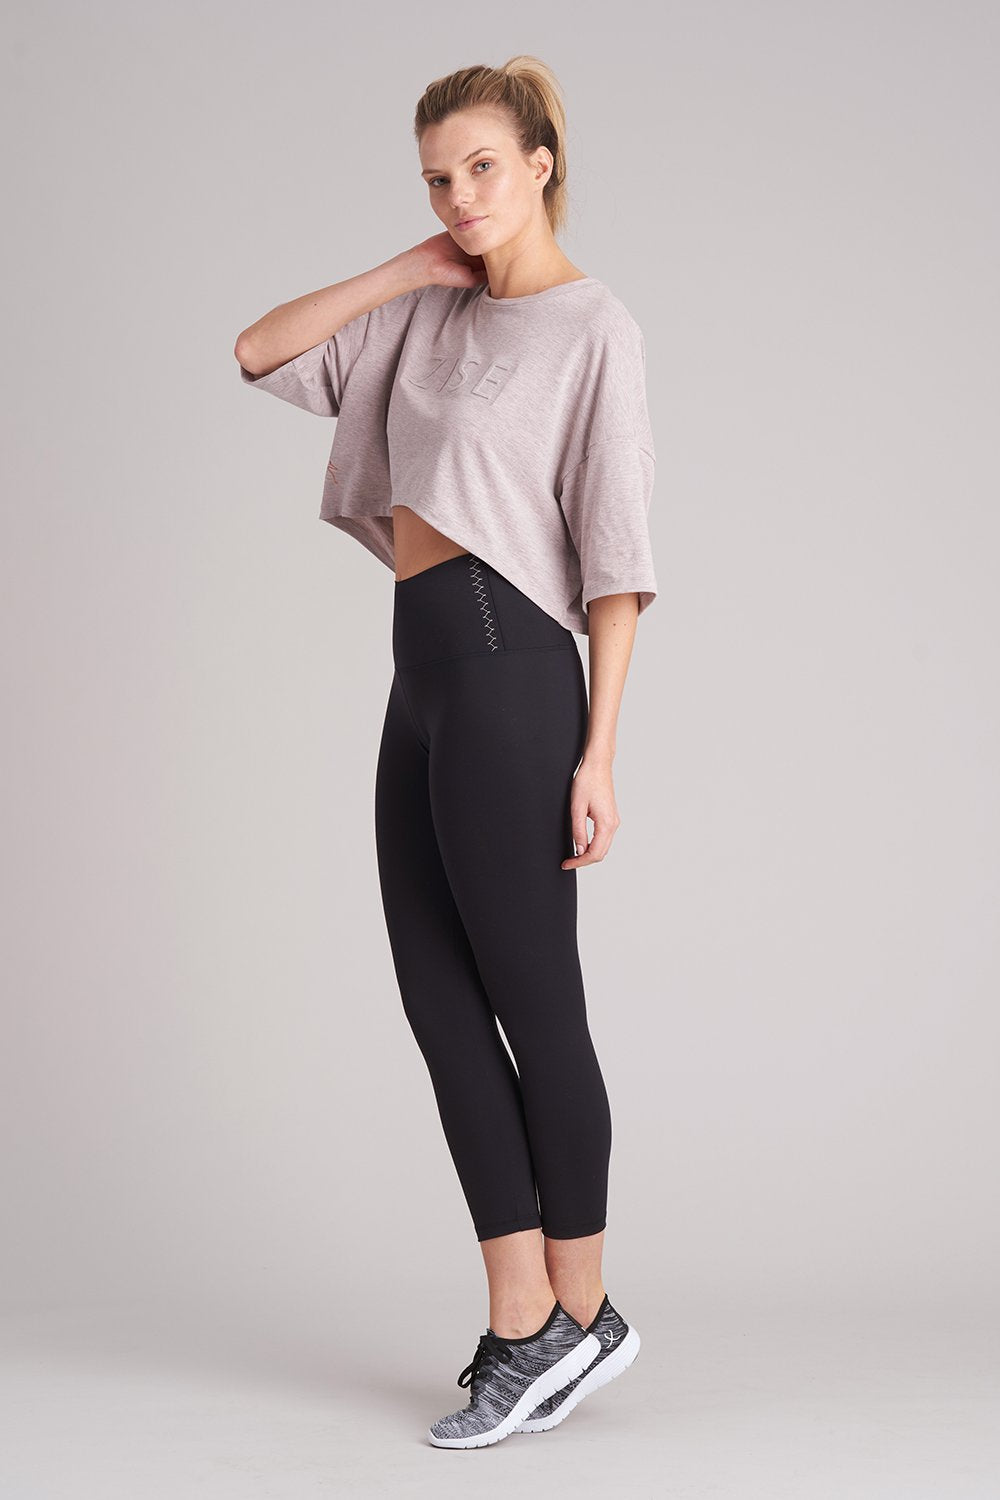 Zise Emmy Loose Crop T-Shirt - BLOCH US